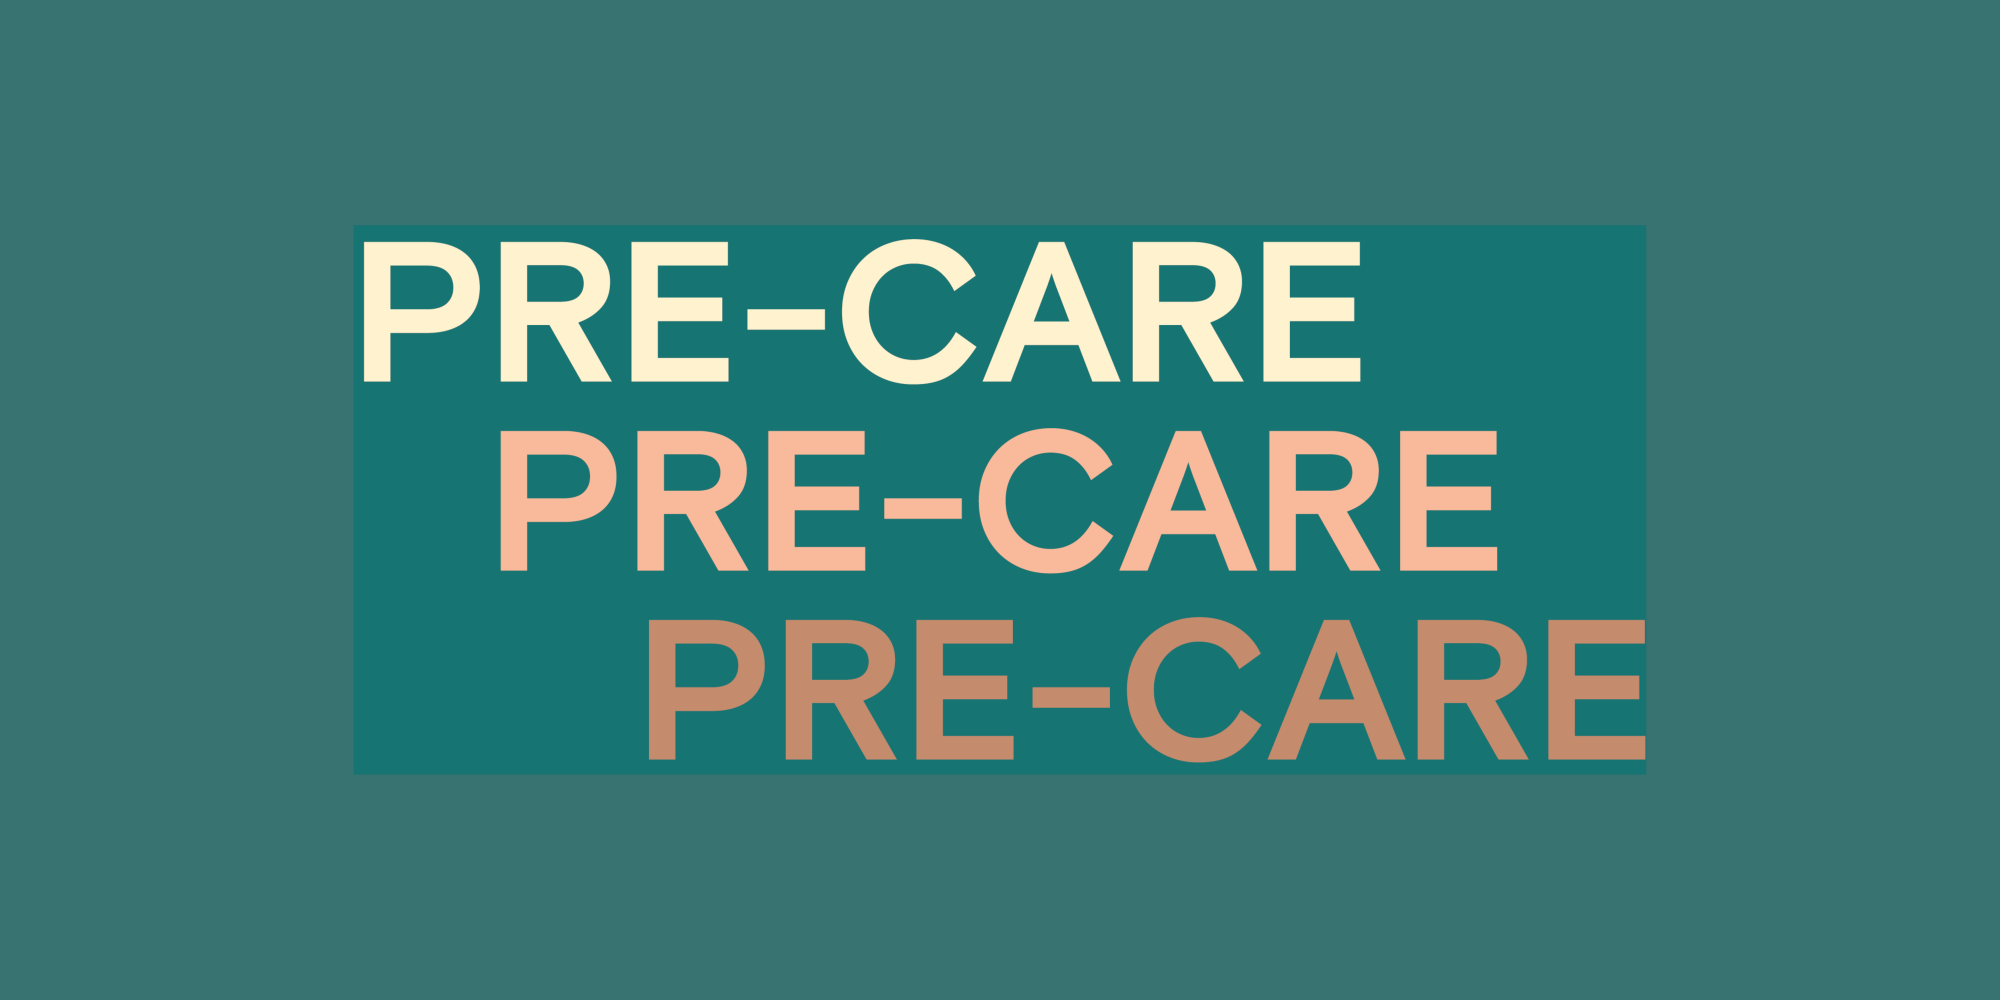 Dipsea Blog: How to increase intimacy with pre-care